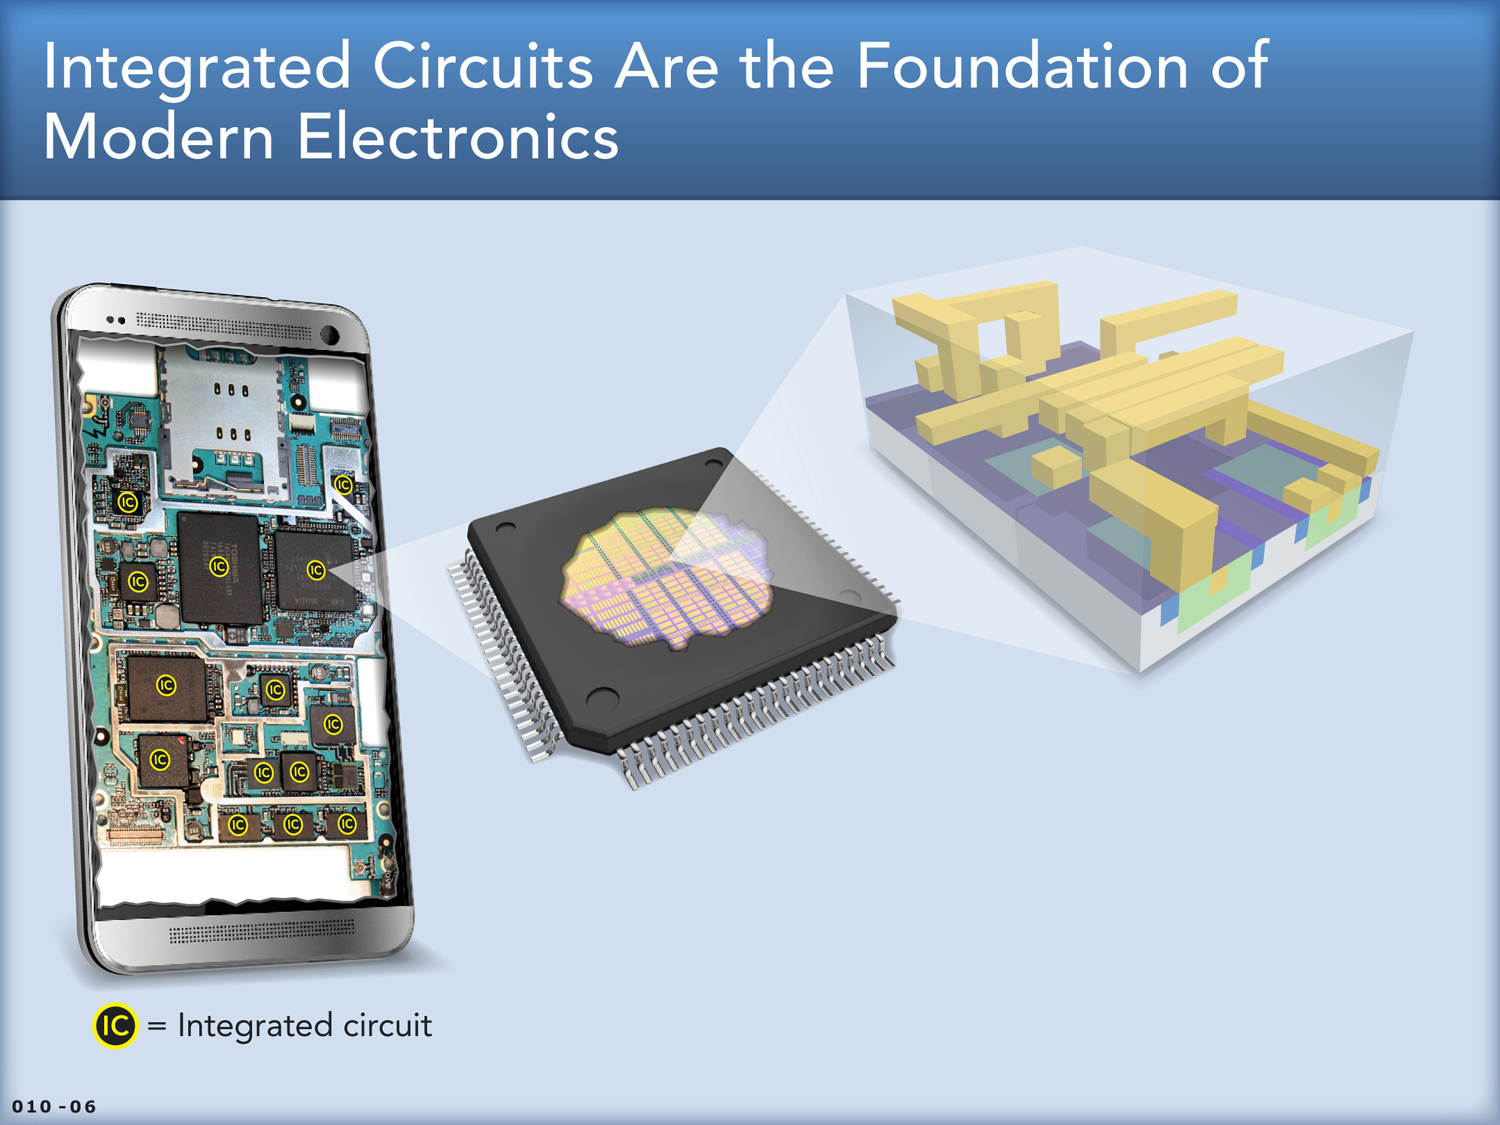 Illustrating the electrical engineering components inside each chip